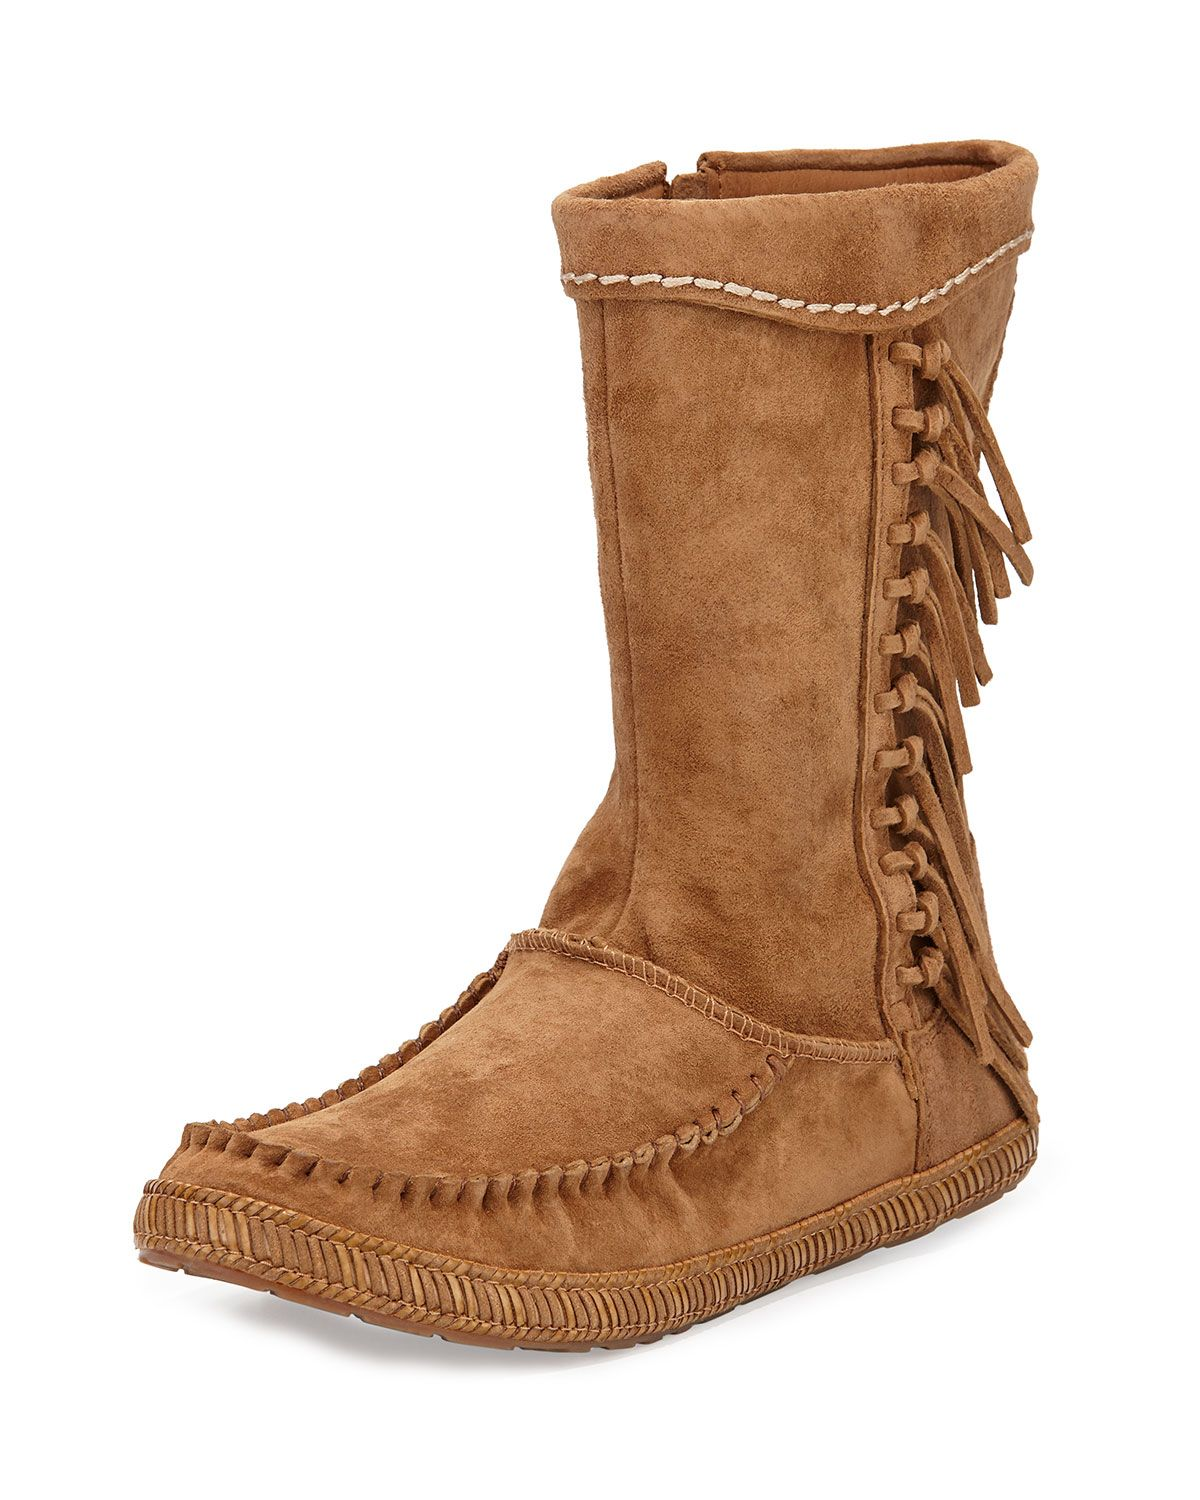 Hyland Mid-Calf Fringe Boot, Chestnut by UGG Australia at Neiman Marcus.